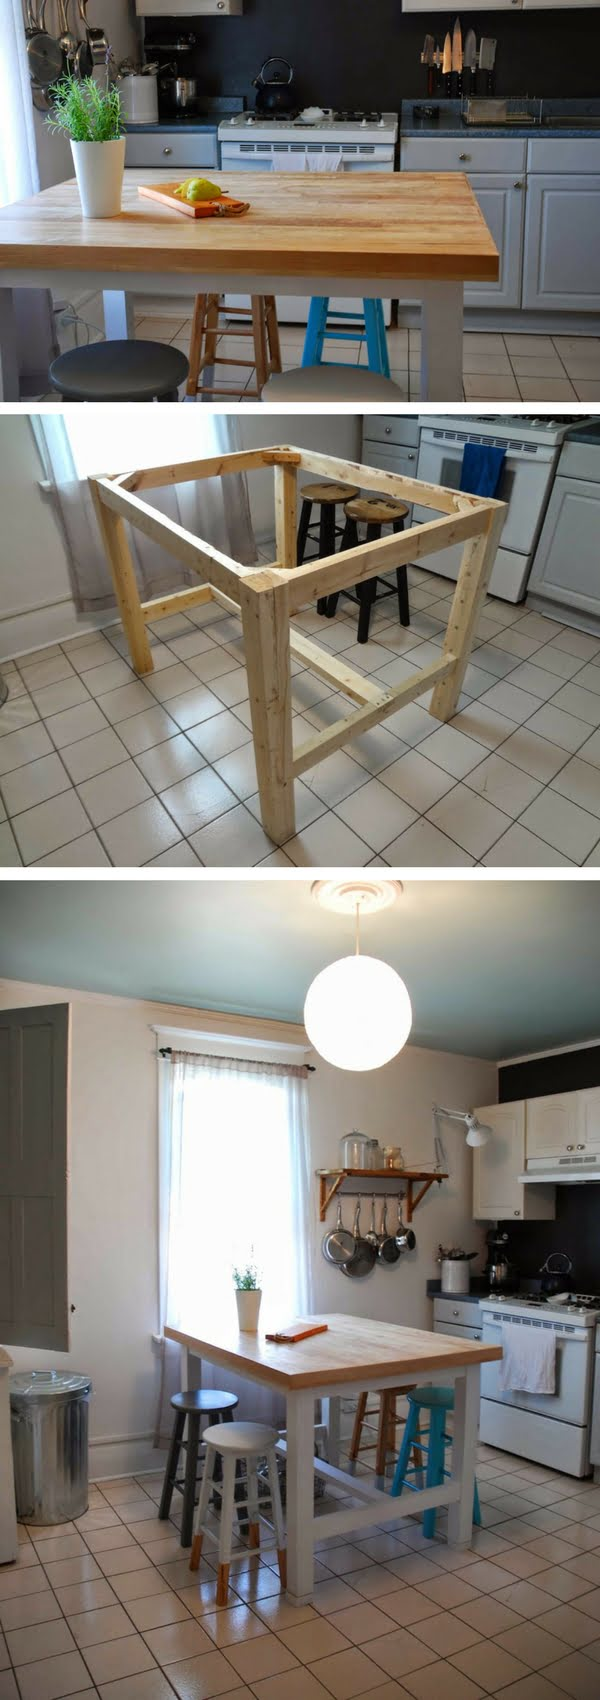 25 Easy DIY Kitchen Island Ideas That You Can Build on a Budget - Check out the tutorial on how to build a DIY tabletop kitchen island